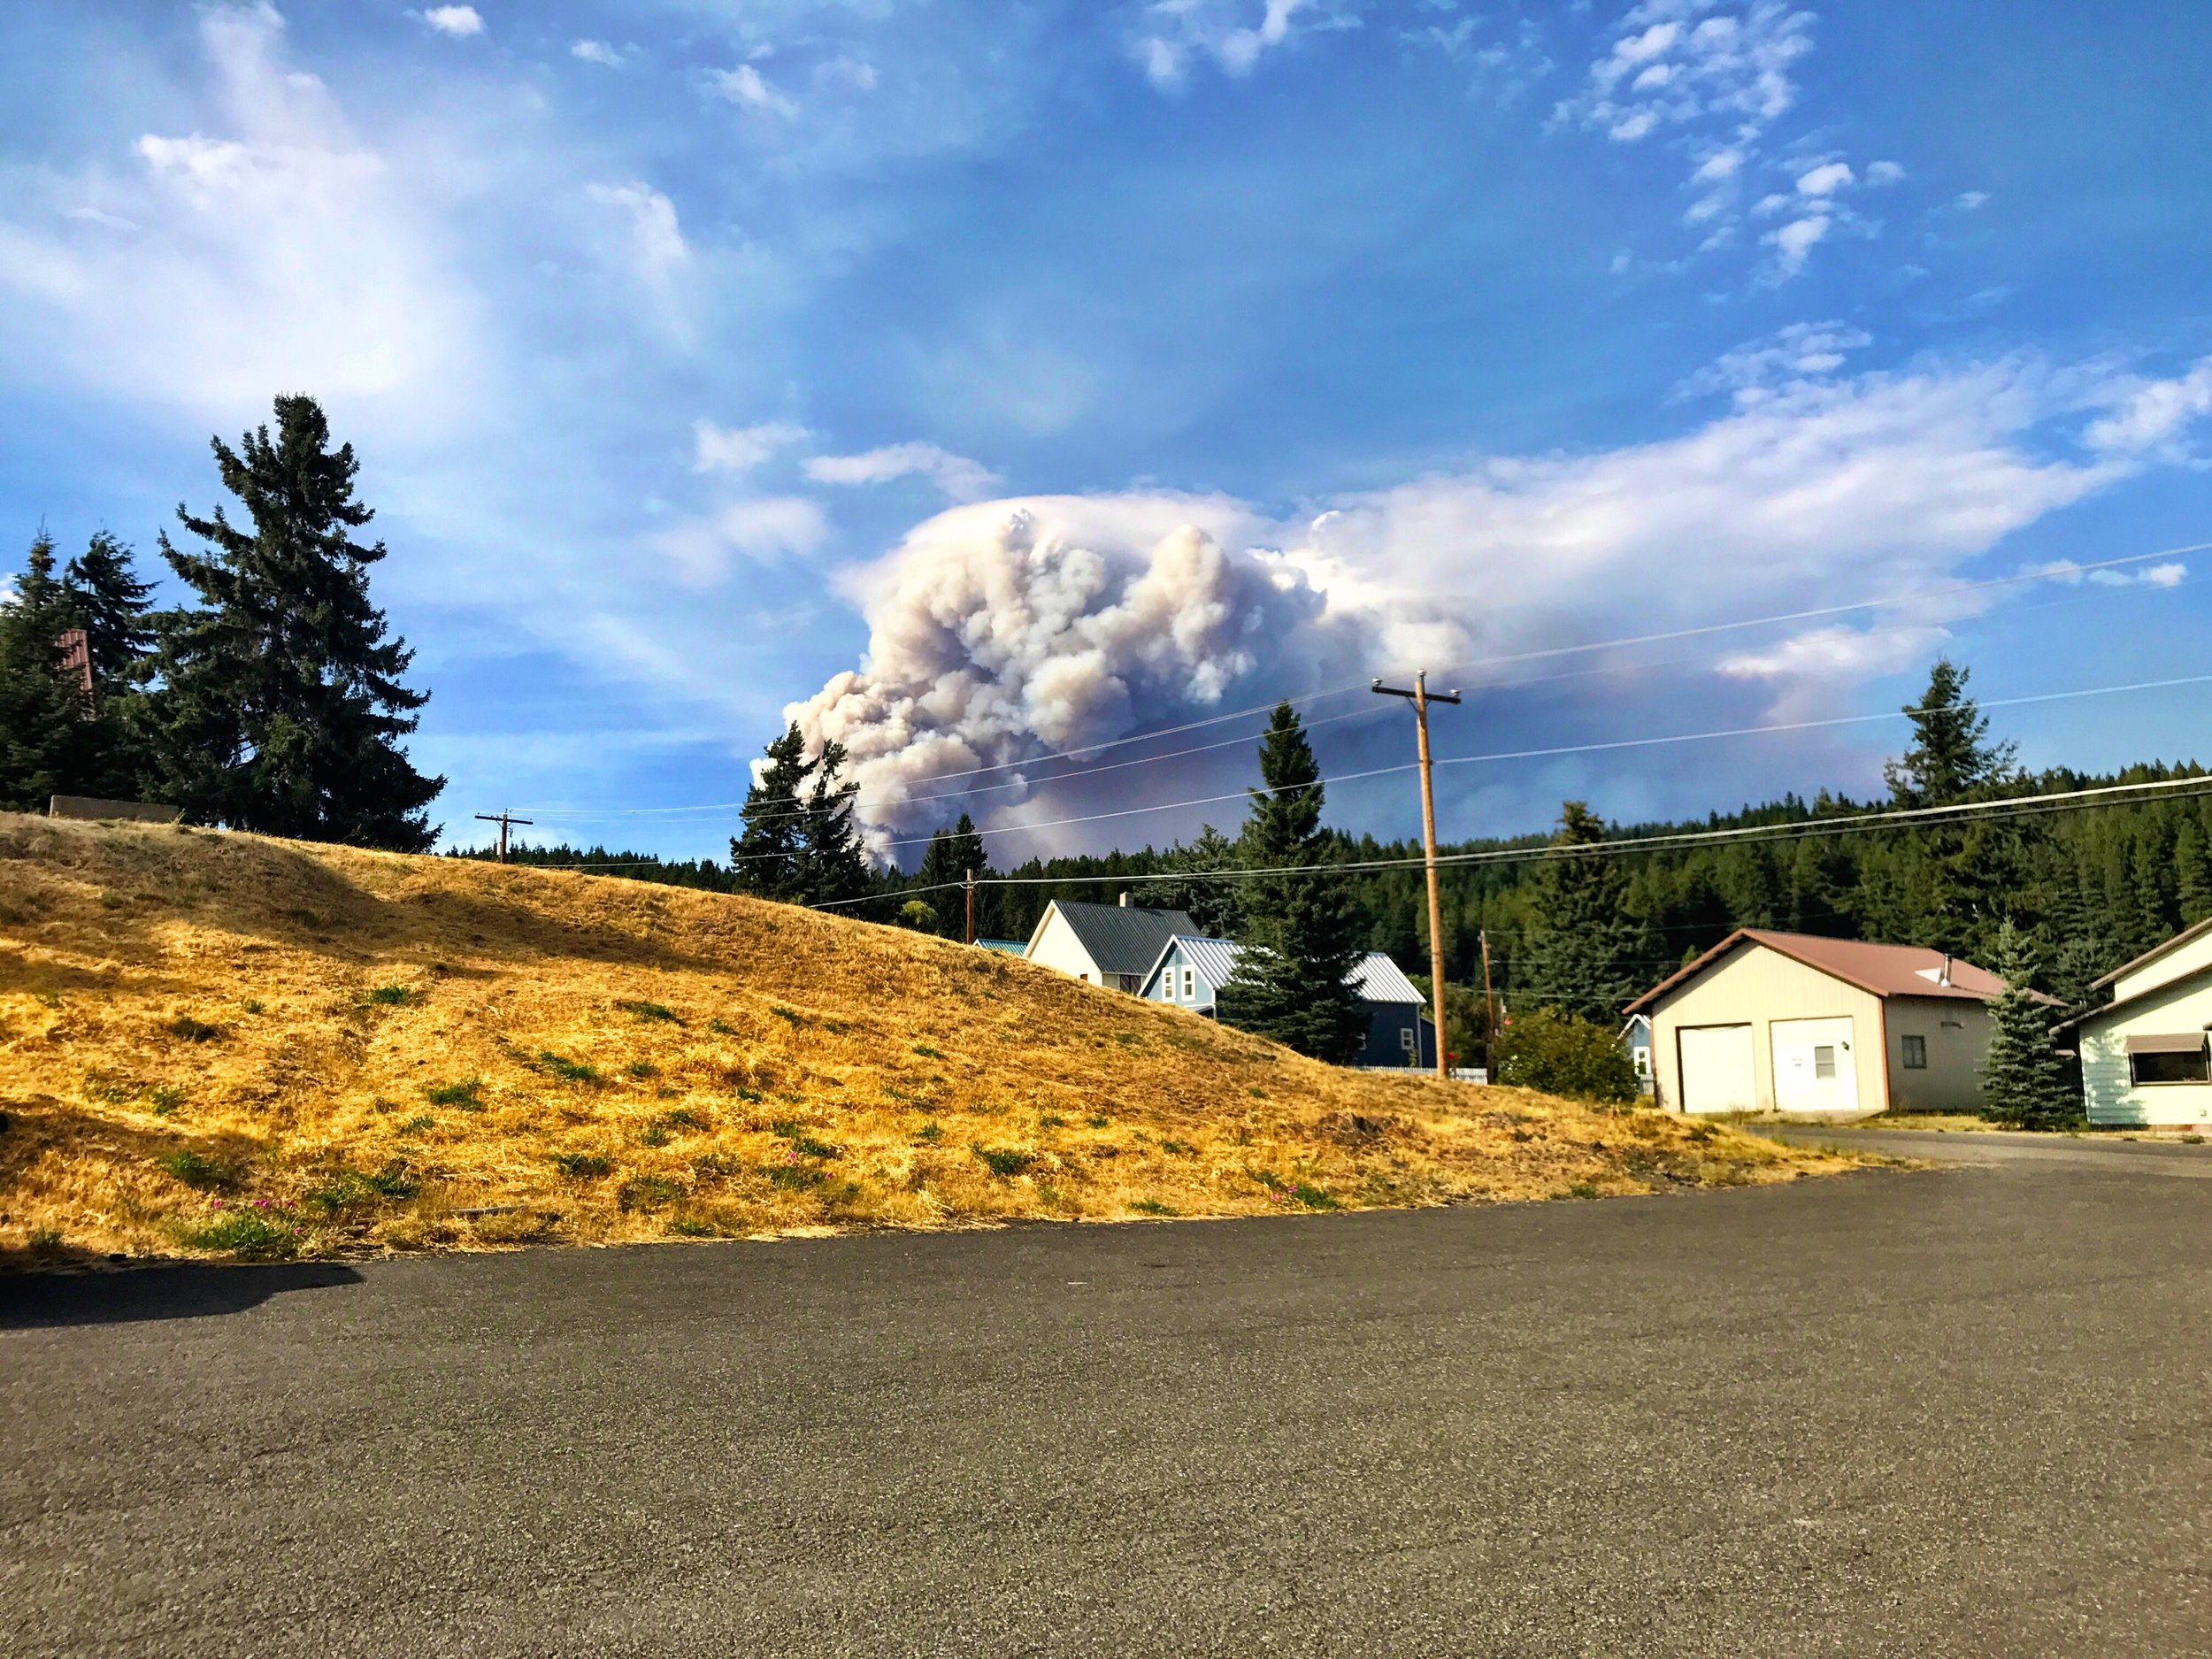 A view of smoke from the Jolly Mountain fire from the town of Roslyn. Photo by Darcy Batura/TNC.